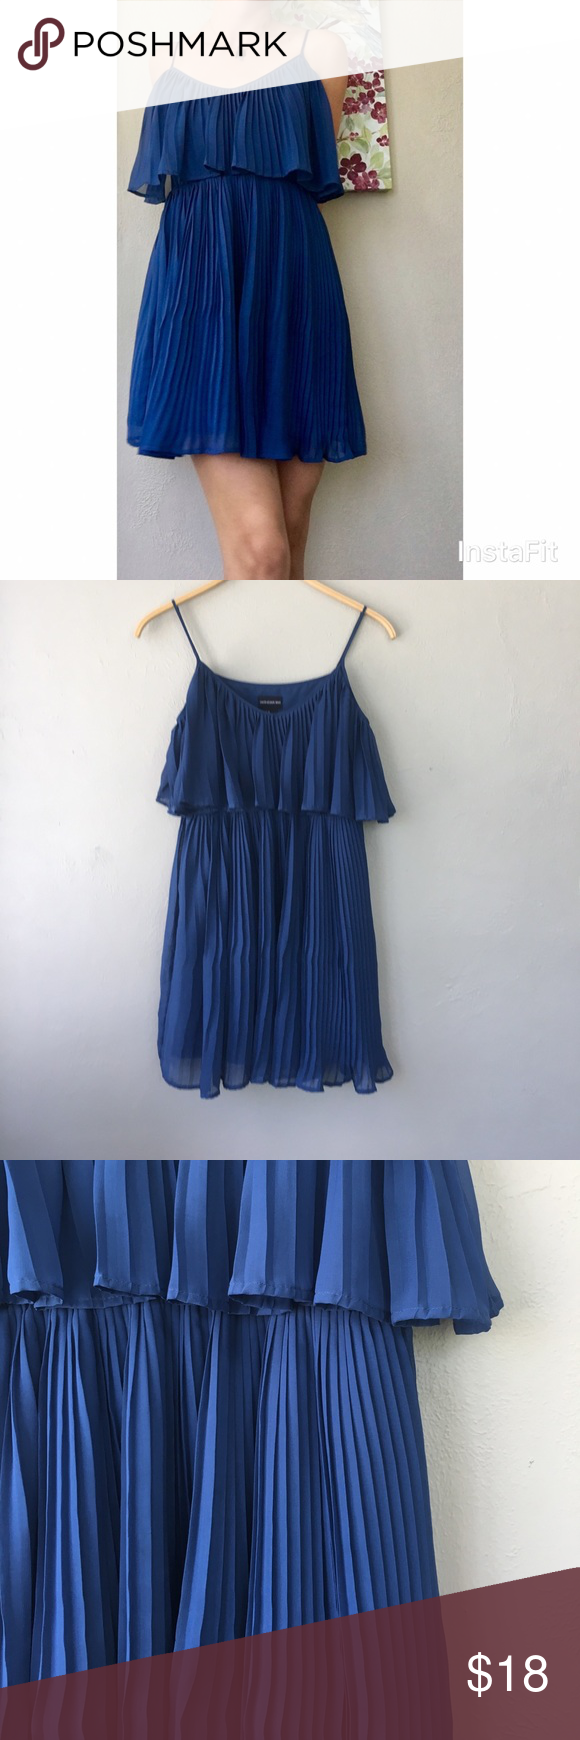 Fun and flirty royal blue pleated dress Short, pleated Central Park West dress in a beautiful royal blue color. Super comfortable and looks great dressed up with heels. Well loved with a couple of nicks, but barely noticeable because of the pleats. 100% polyester Central Park West Dresses Mini